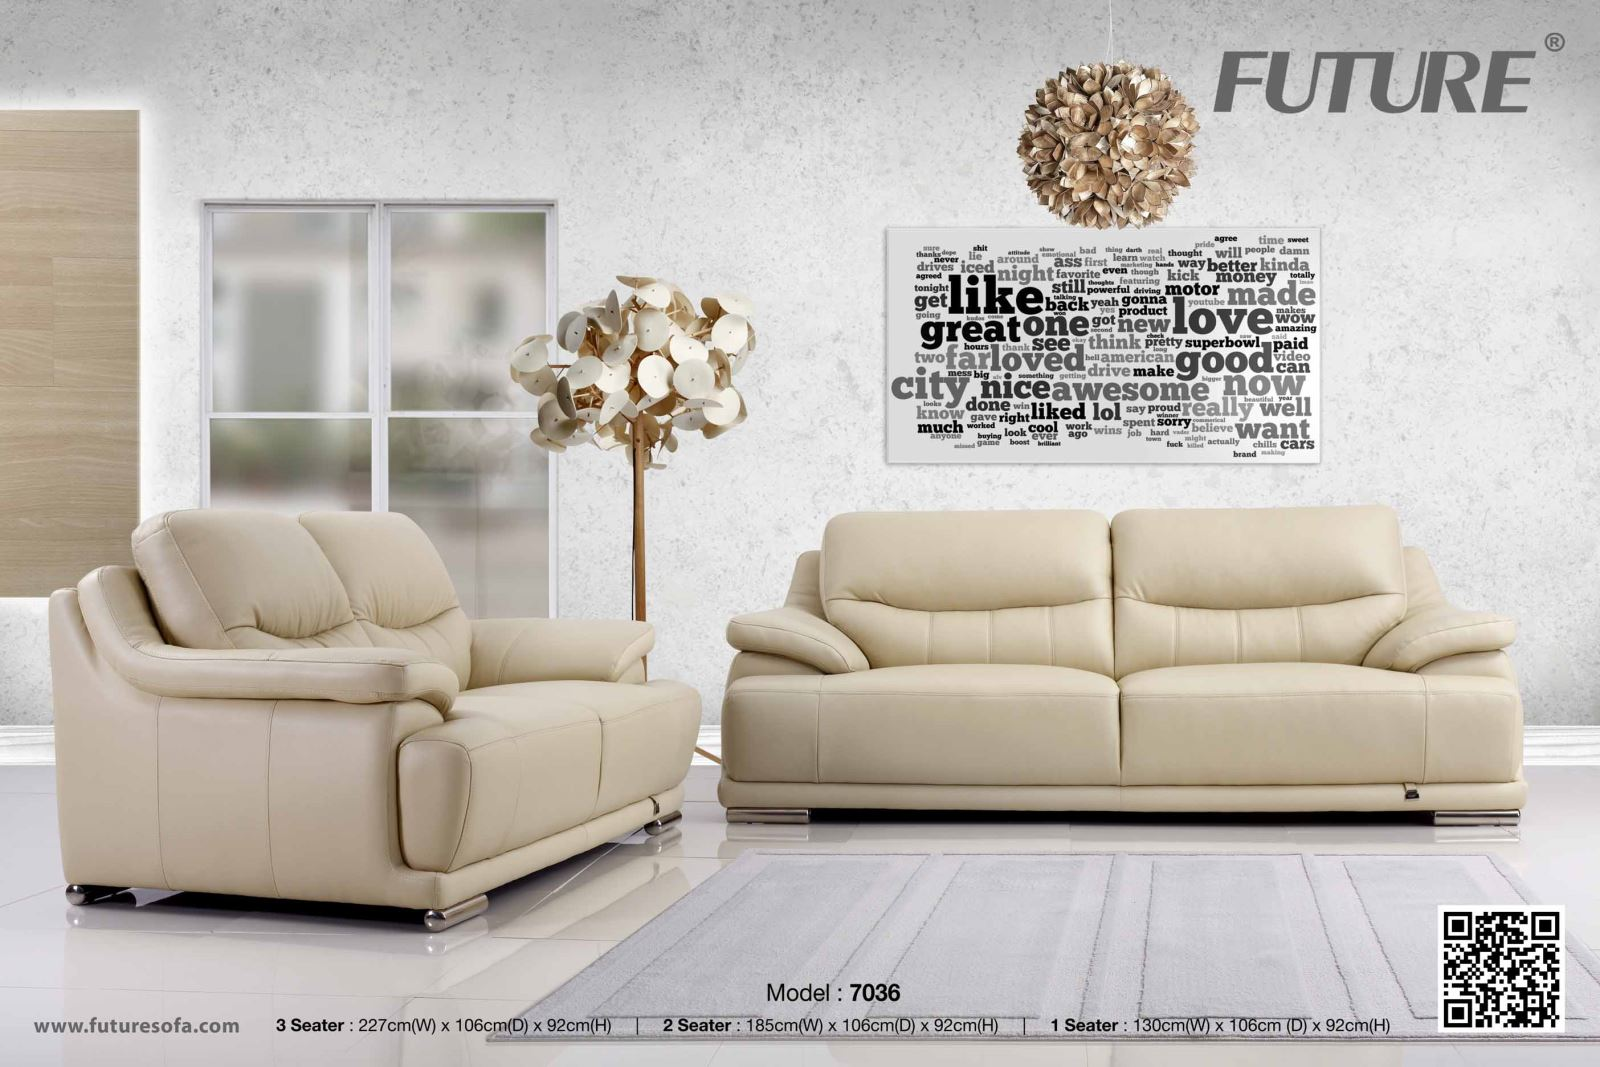 SOFA BĂNG DA BÒ - FUTURE MODEL 7036